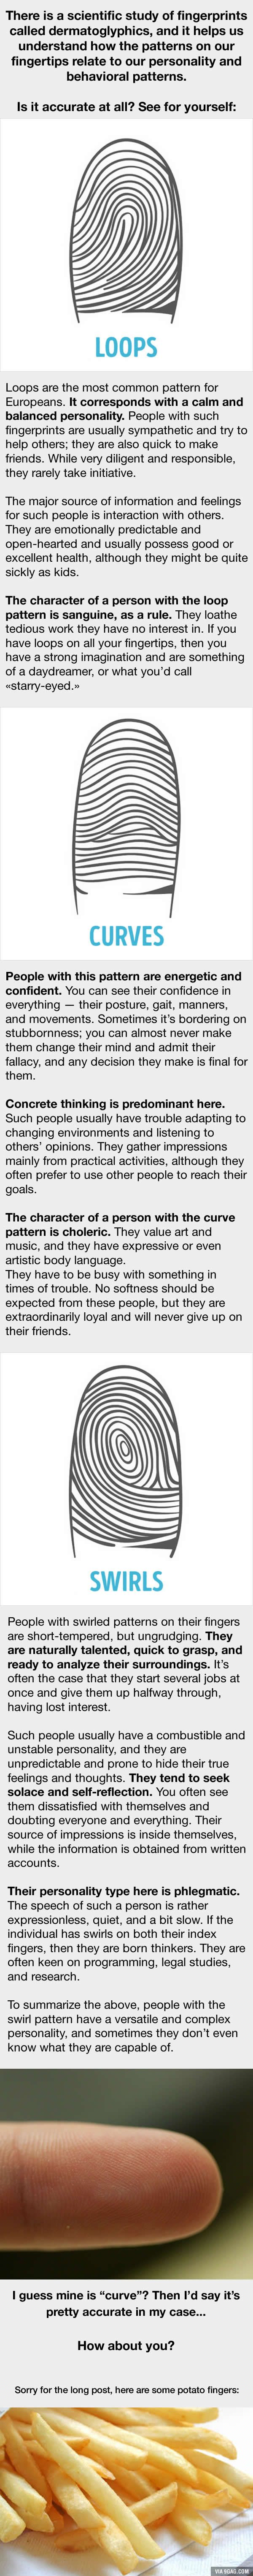 Dermatoglyphics - what your fingerprints say about who you are (mine's the LOOPS)